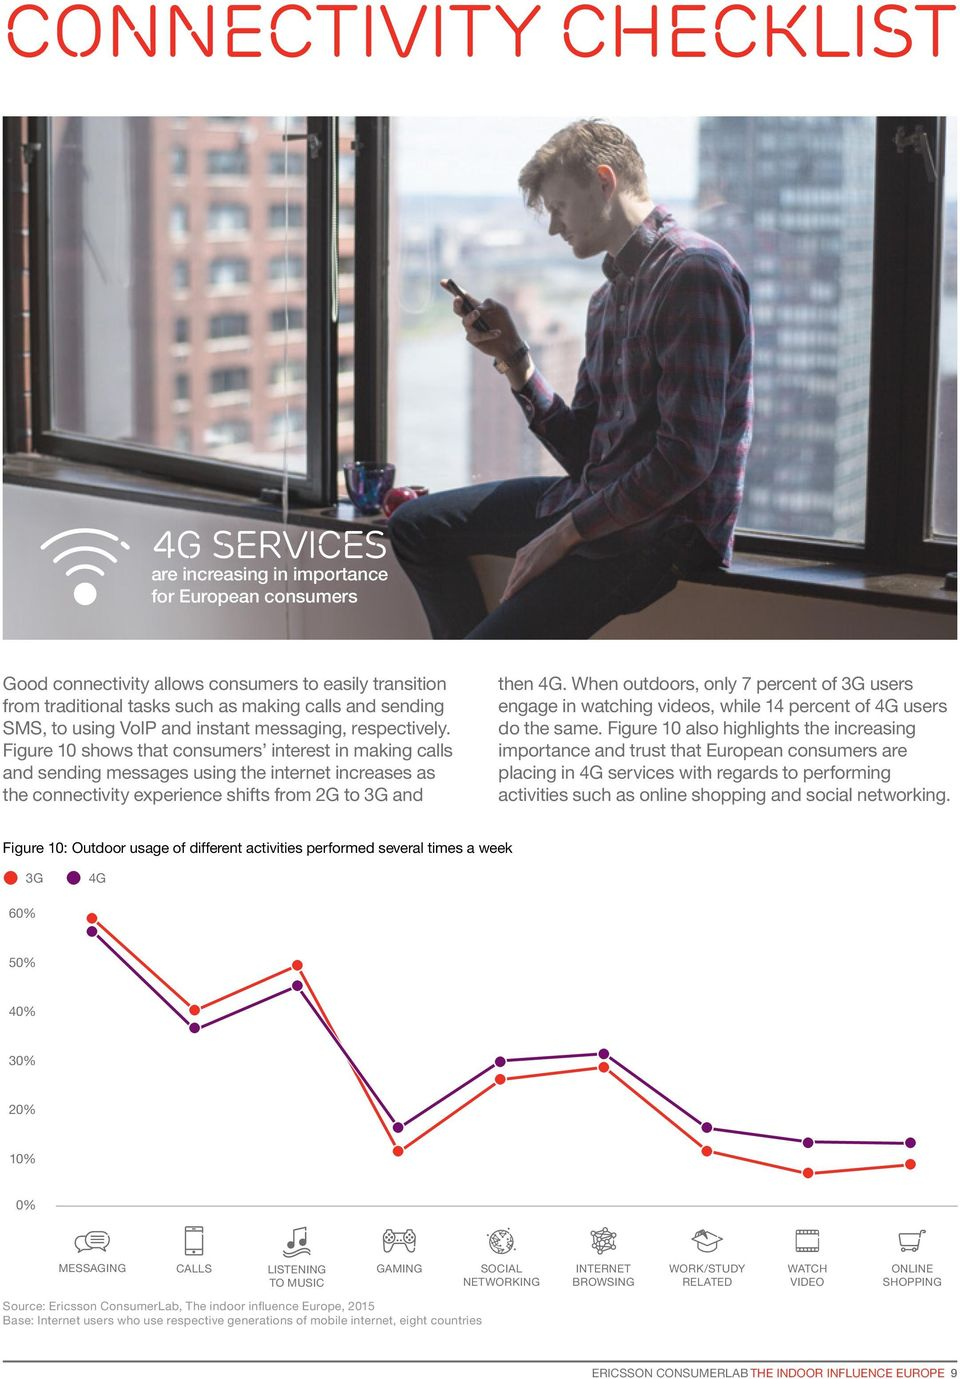 Figure 10 shows that consumers interest in making calls and sending messages using the internet increases as the connectivity experience shifts from 2G to 3G and then 4G.